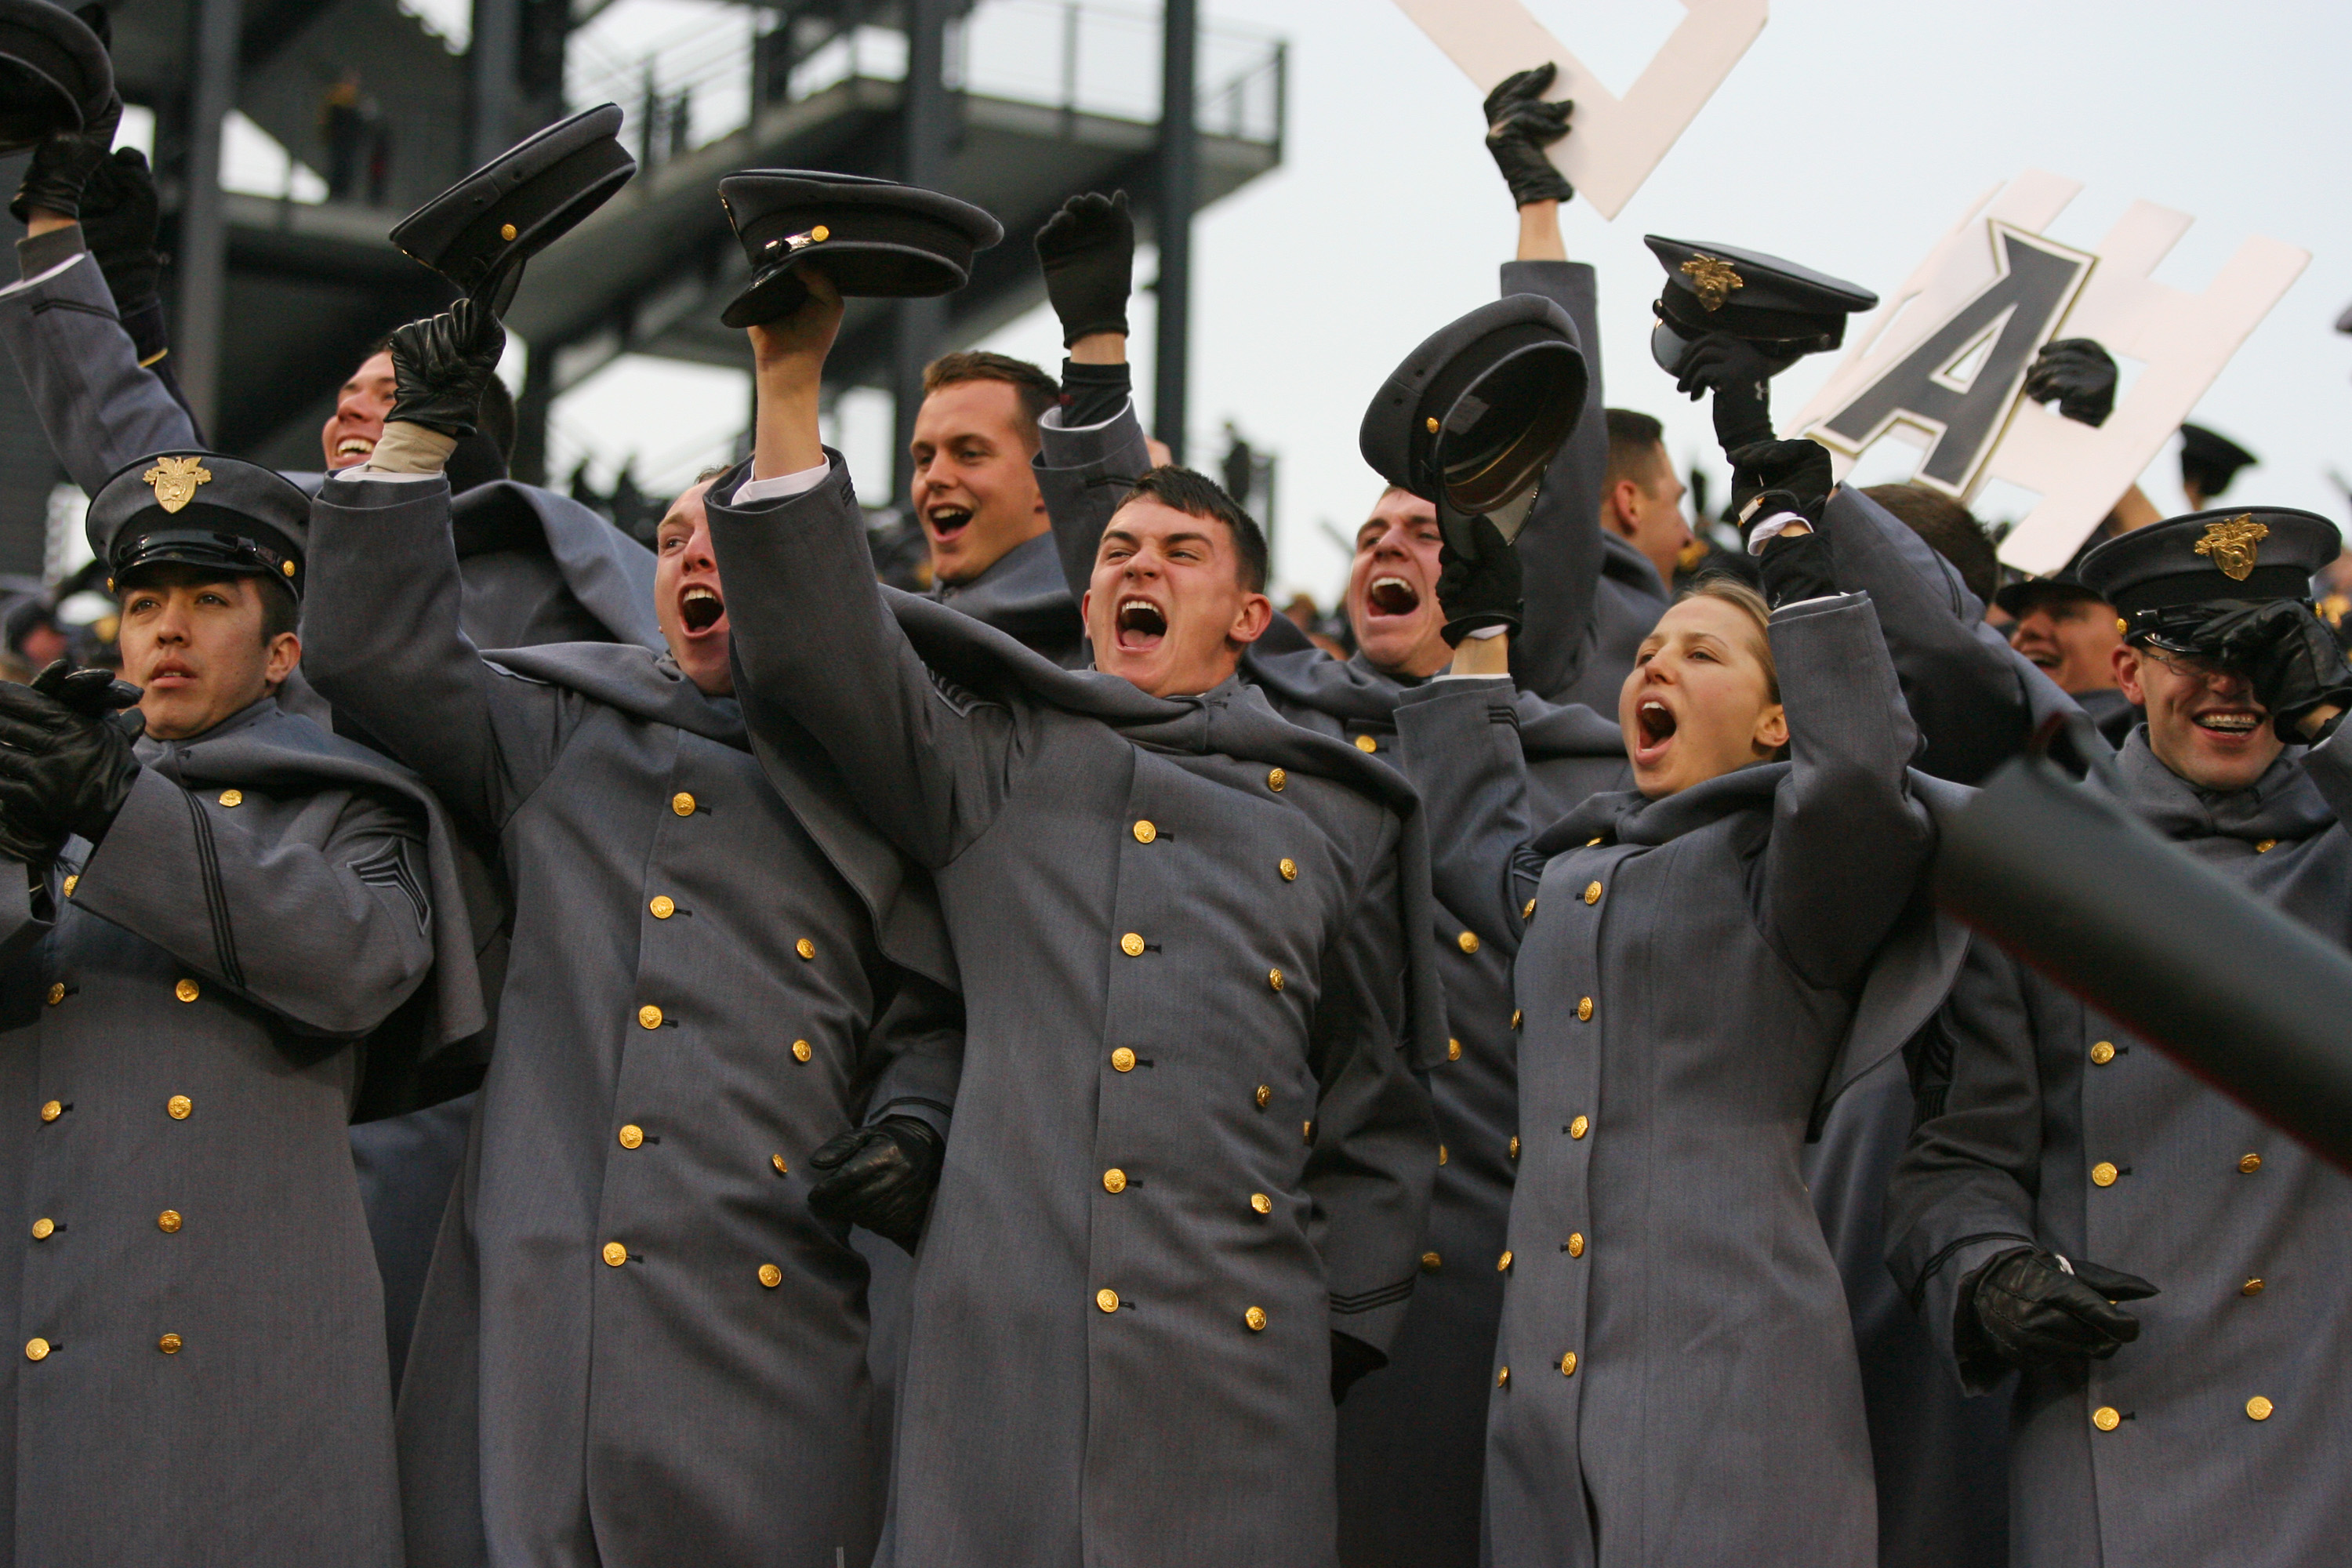 PHILADELPHIA - DECEMBER 11: Army Cadets cheer during a game against the Navy Midshipmen on December 11, 2010 at Lincoln Financial Field in Philadelphia, Pennsylvania. The Midshipmen won 31-17. (Photo by Hunter Martin/Getty Images)